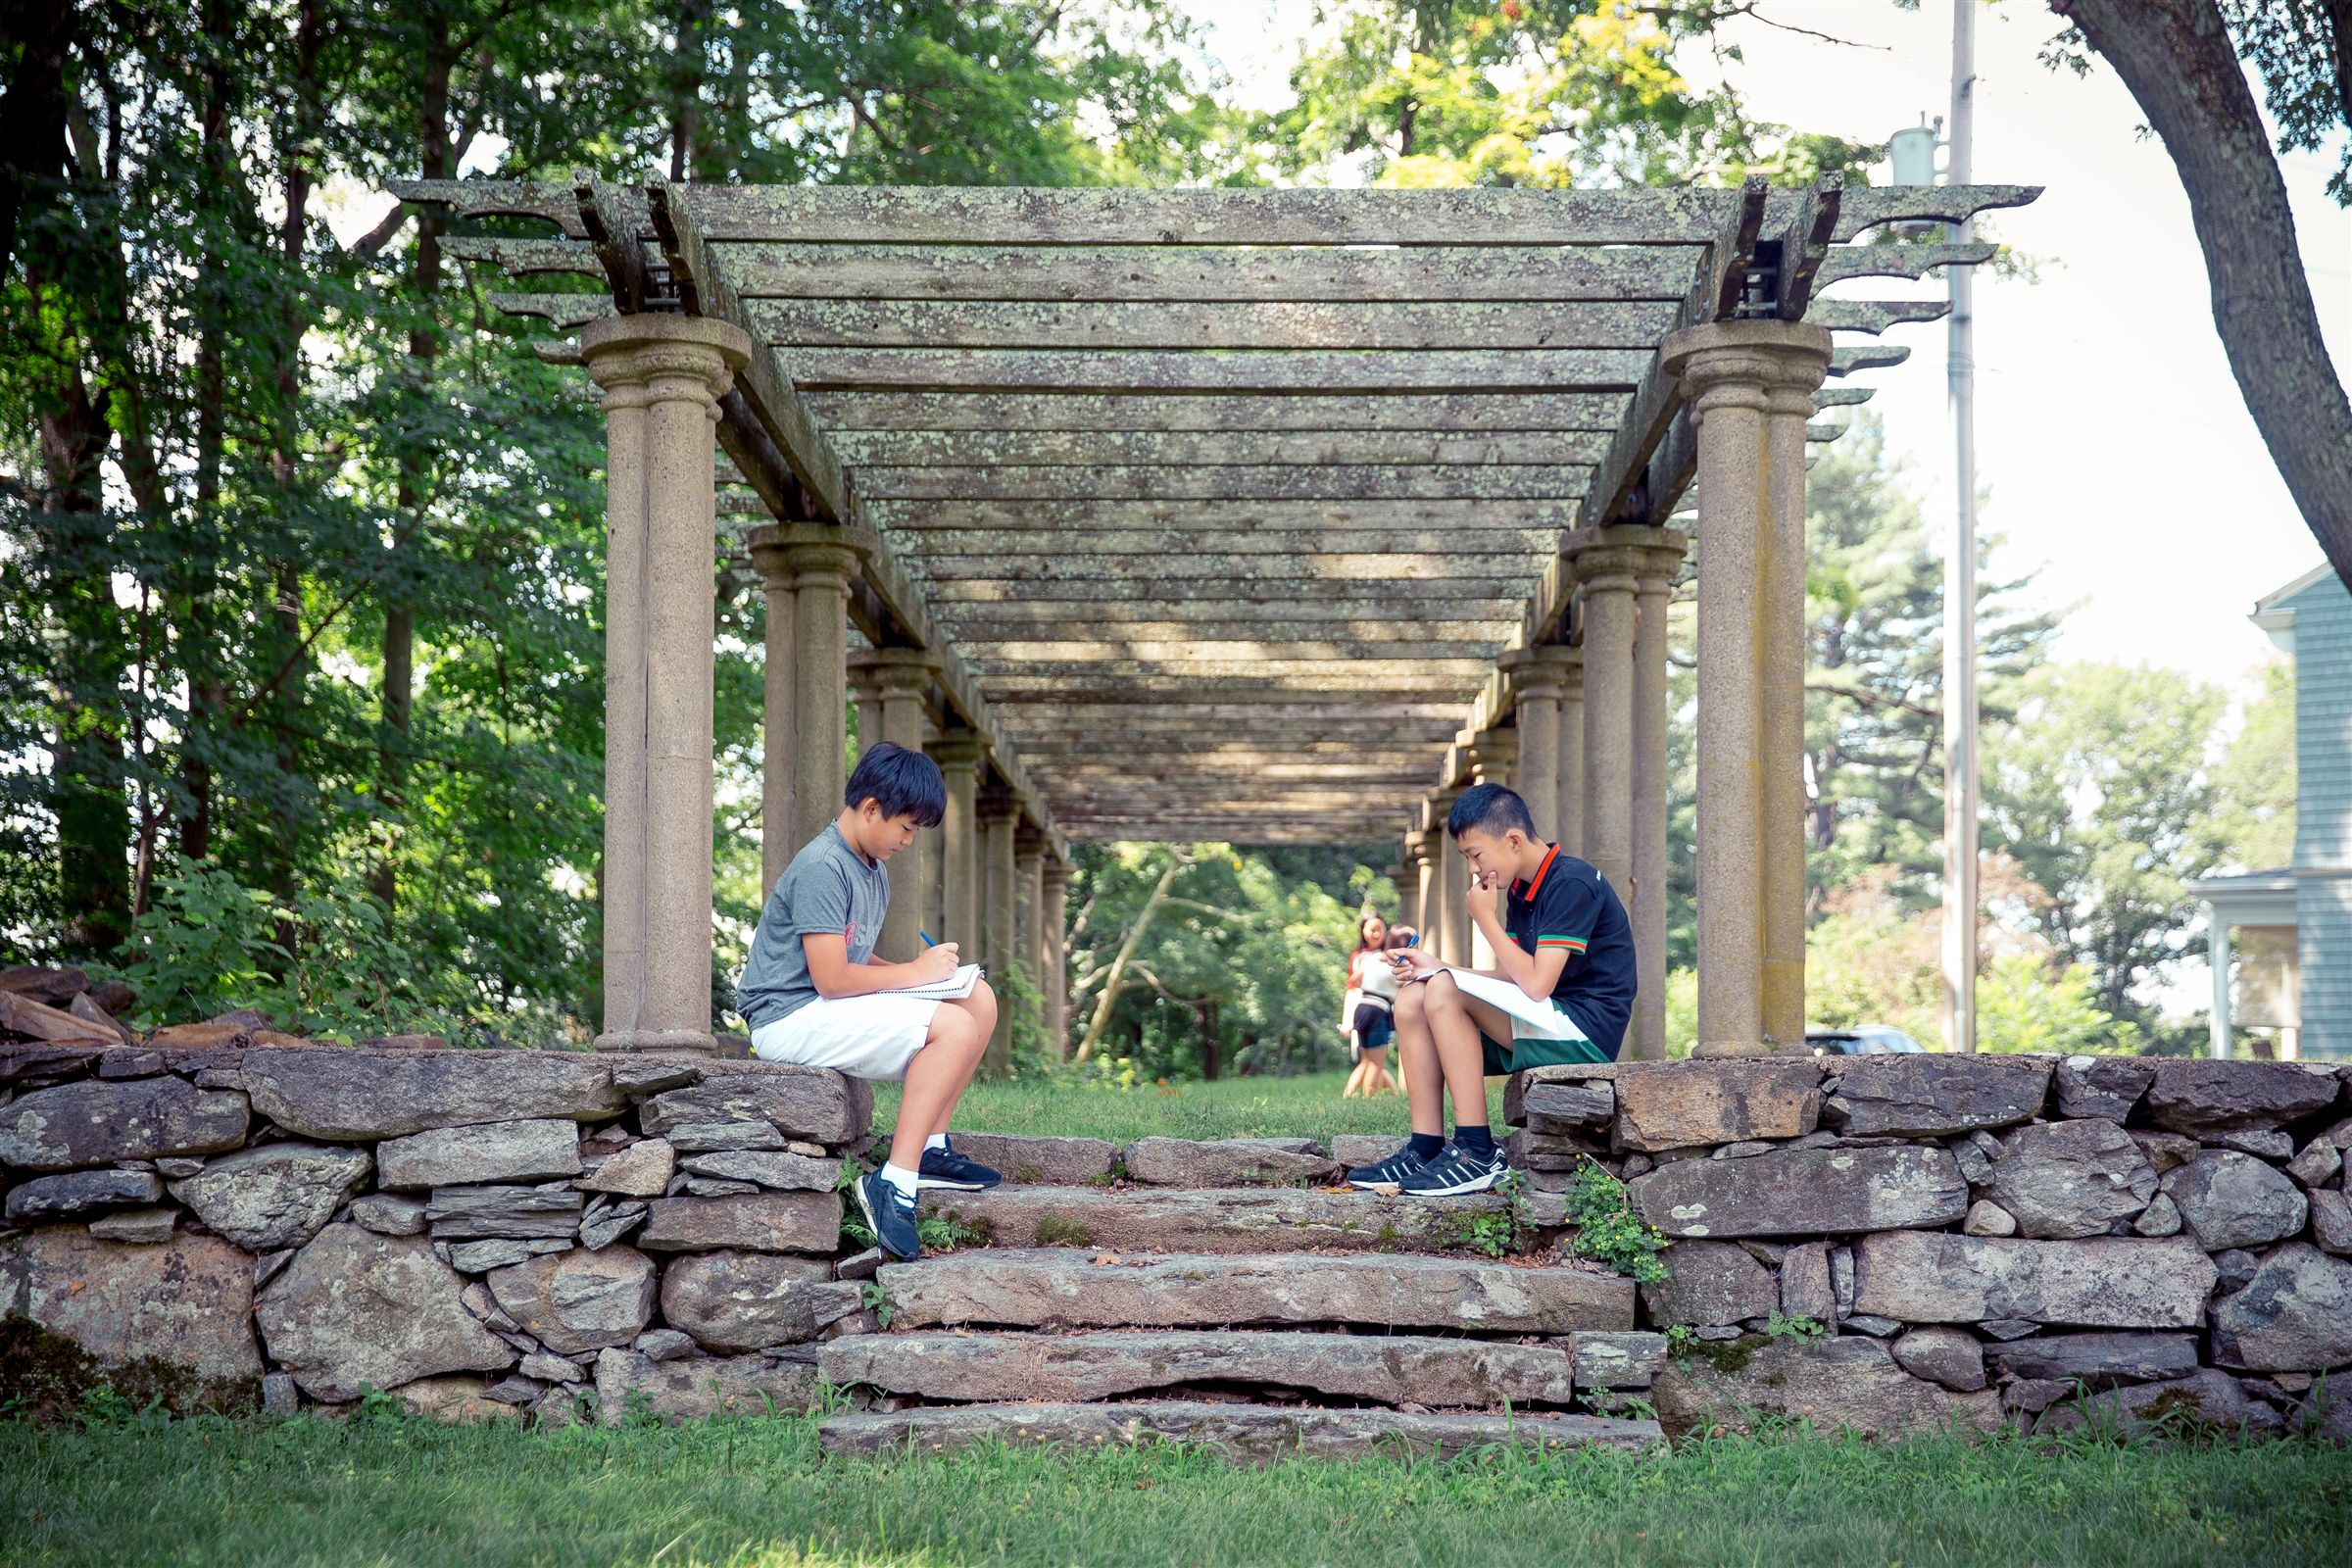 Campers can relax in our sunken garden by reading a book or working on an art project.